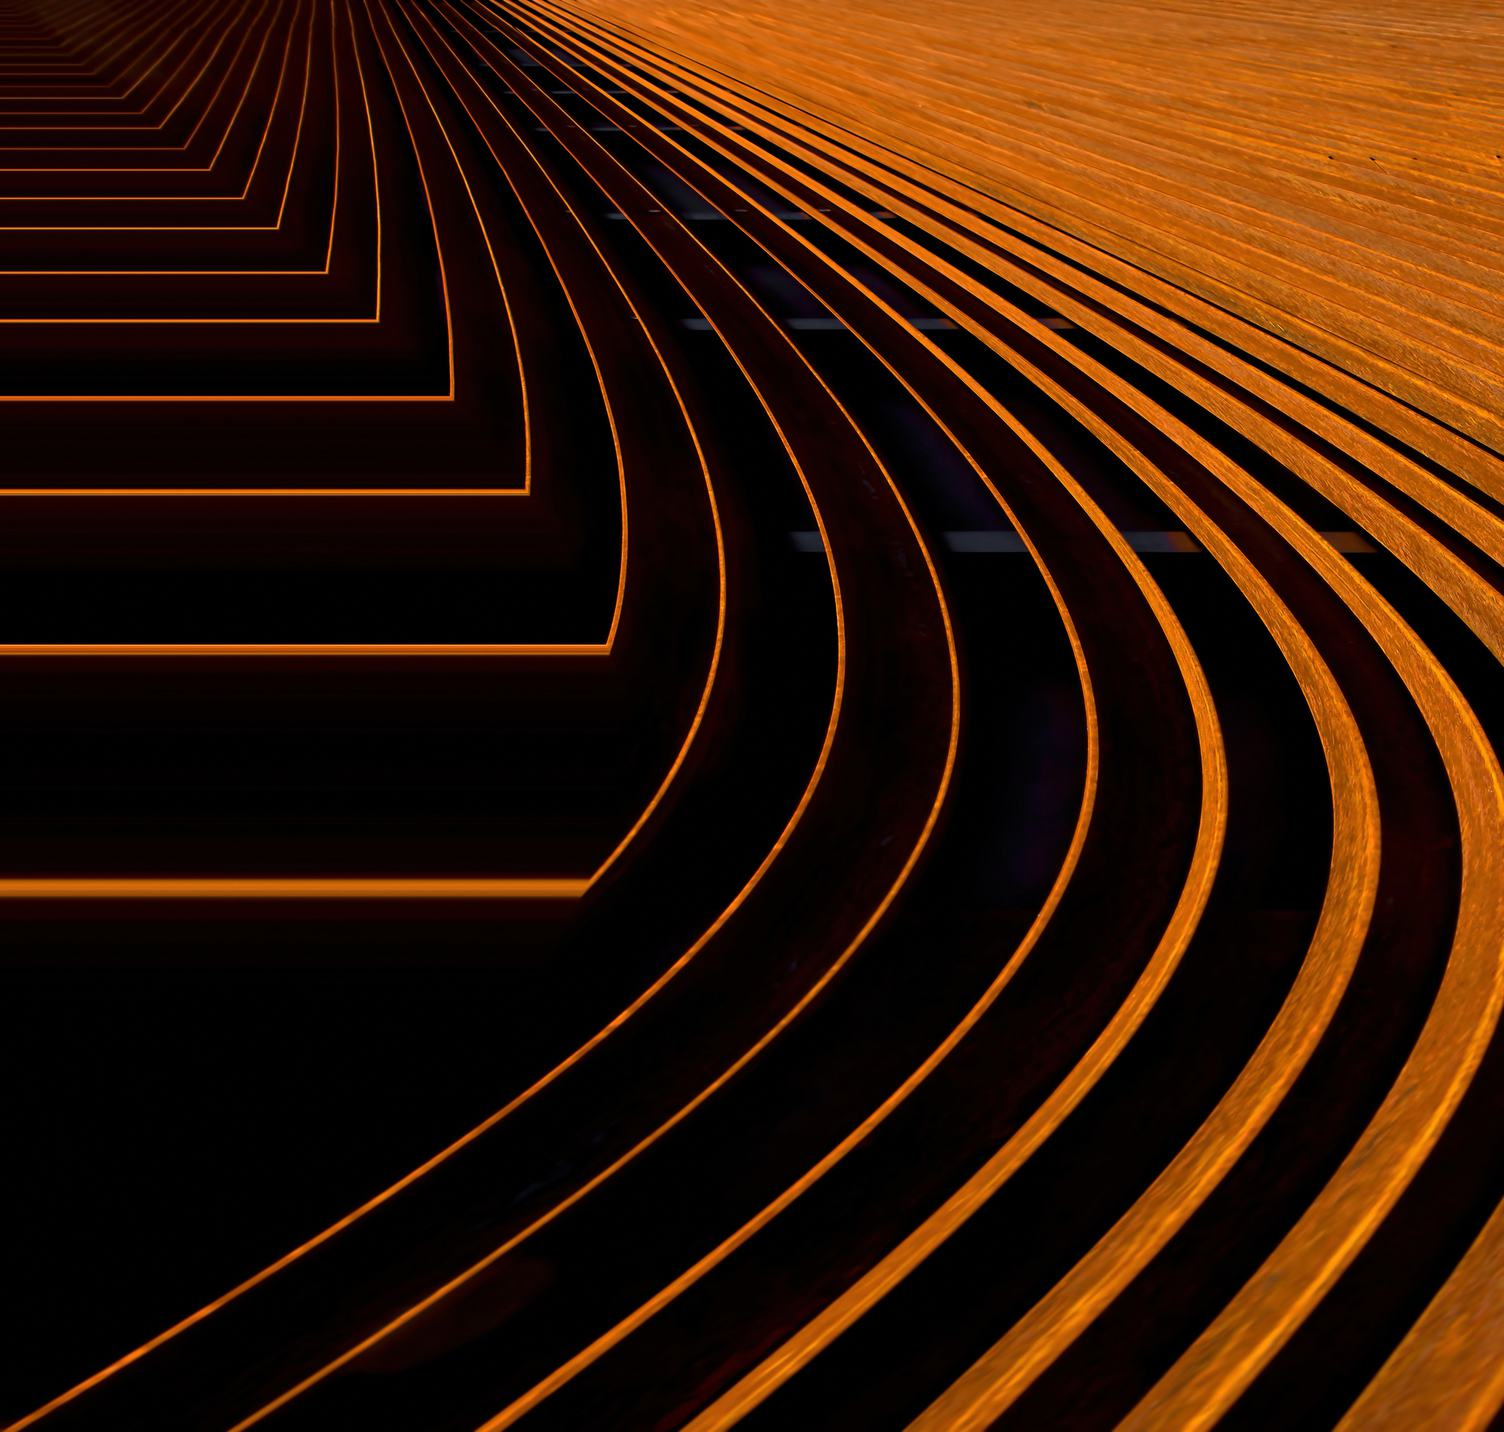 Abstract Steel Structure Background